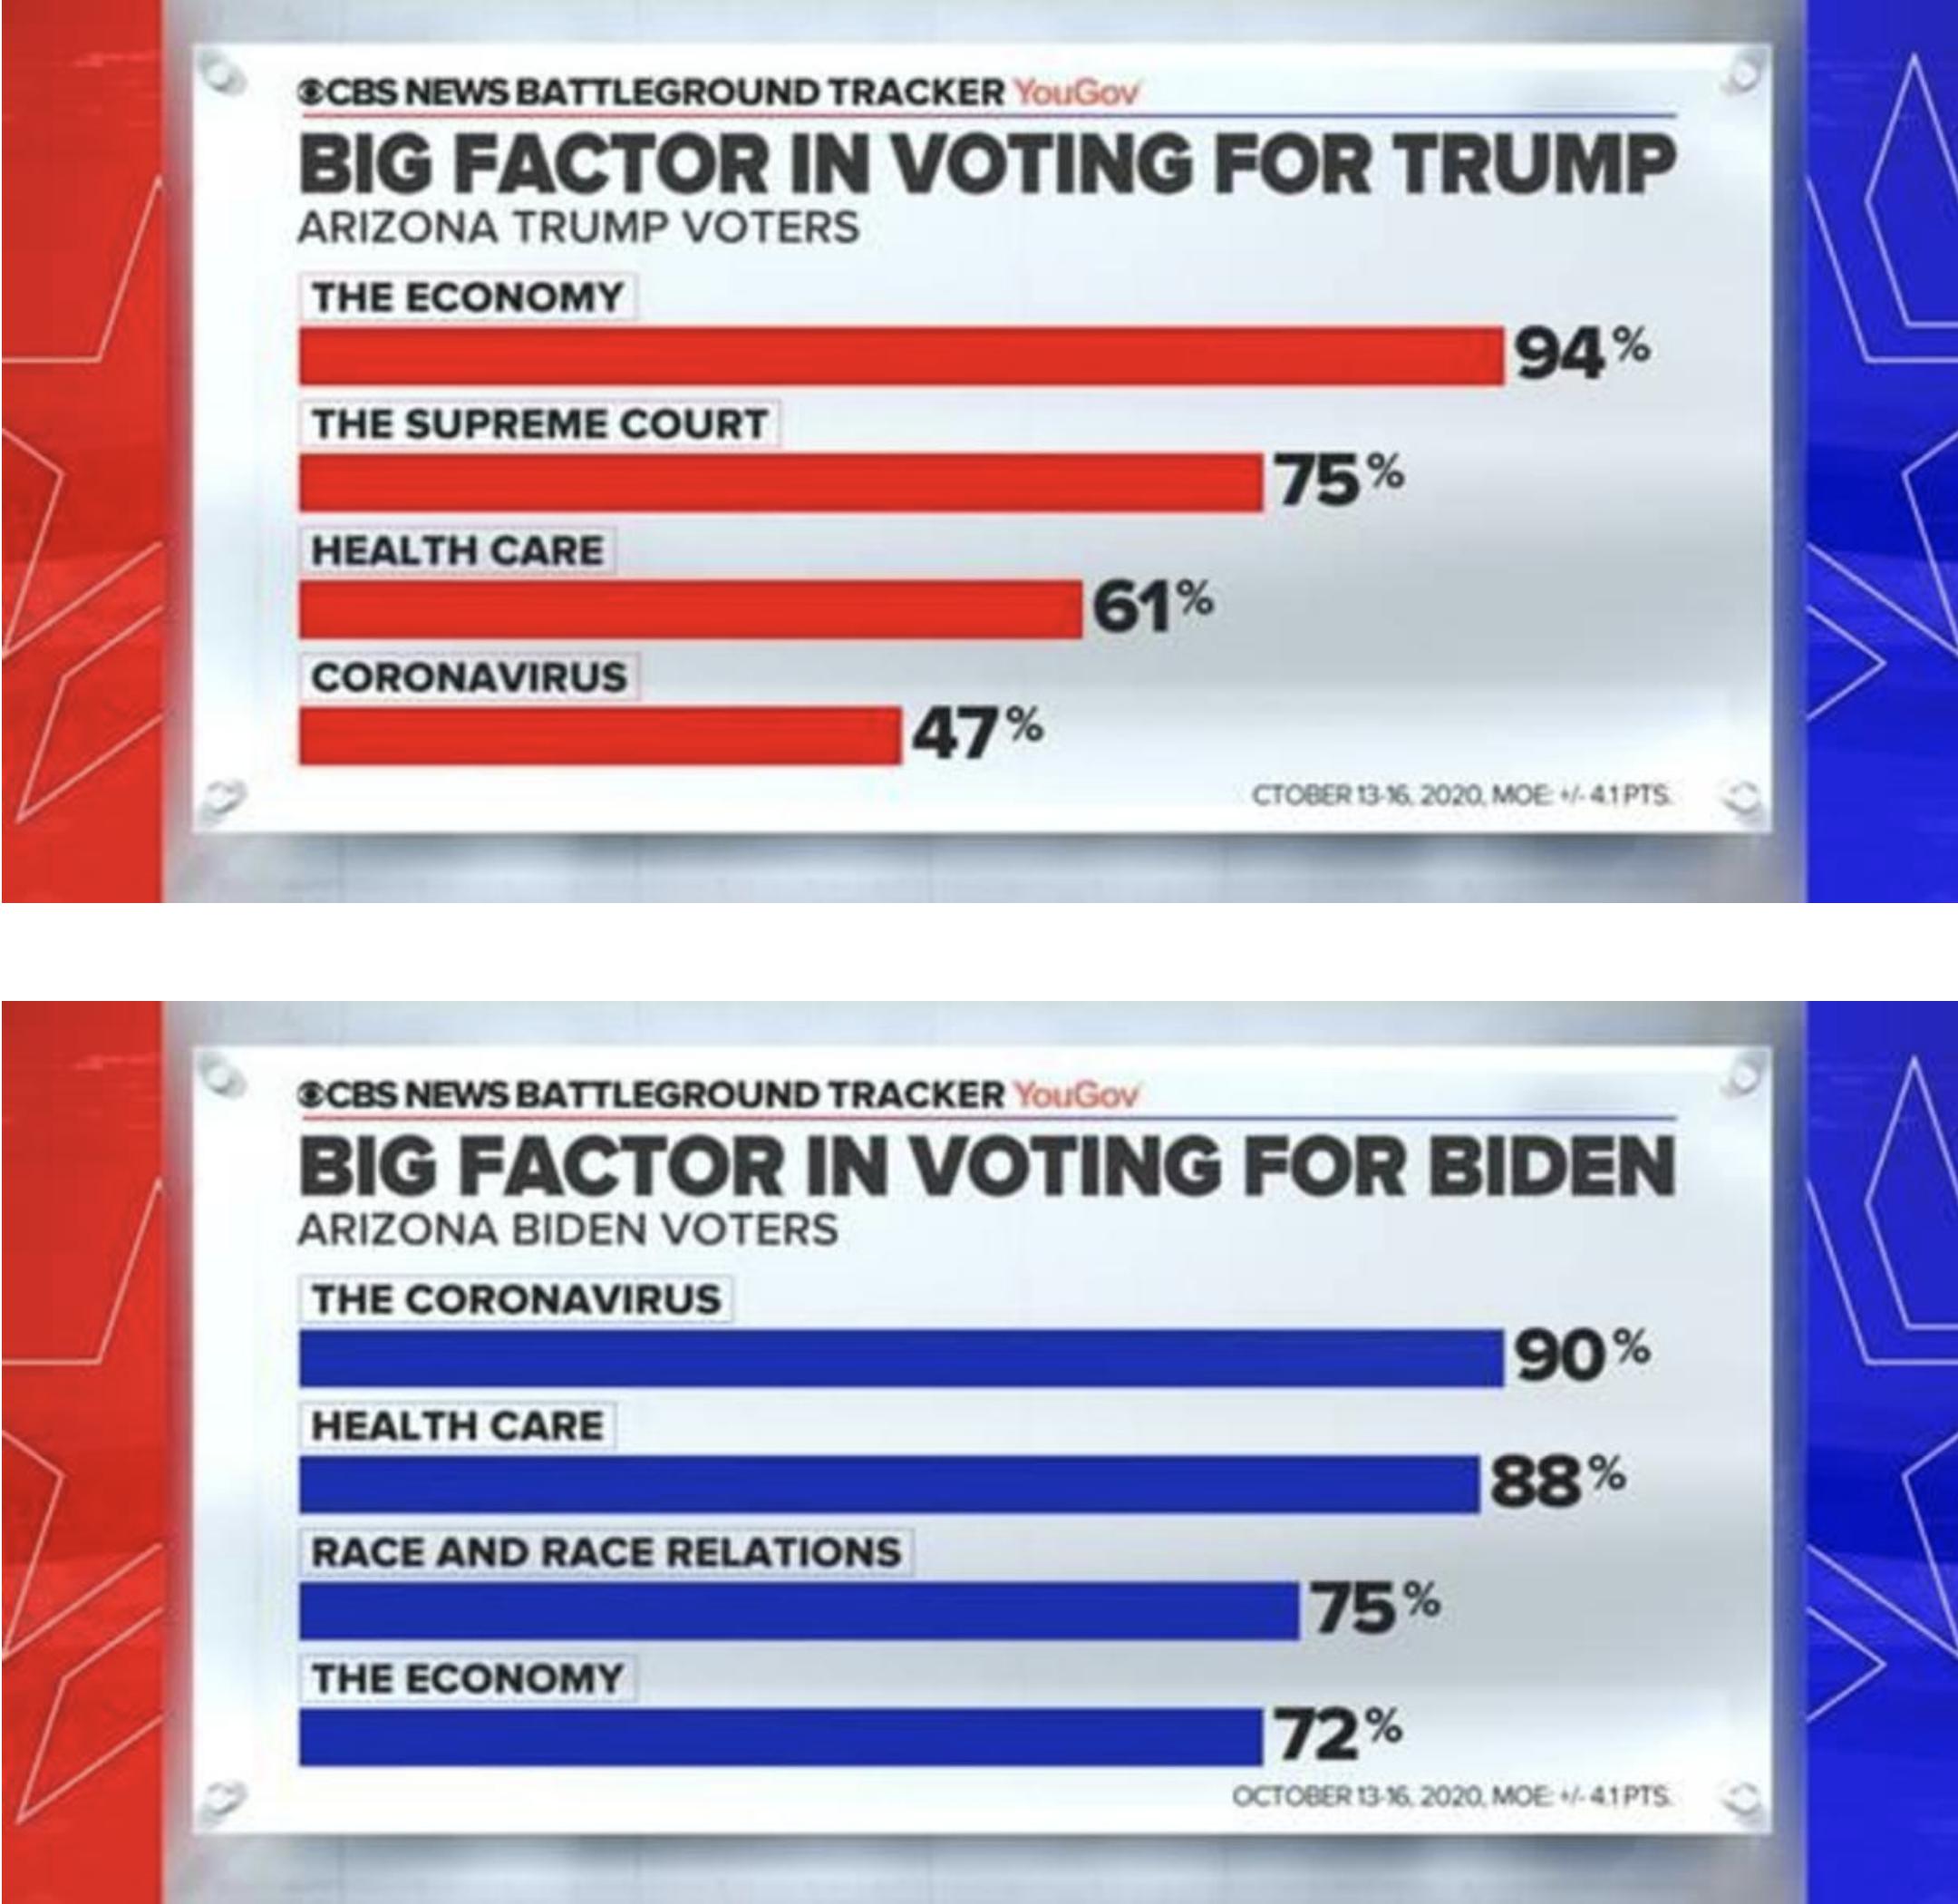 Screen-Shot-2020-10-18-at-11.53.13-AM Updated 'Swing State' Poll Results Show Dramatic Double-Digit Gap Election 2020 Featured Politics Polls Top Stories